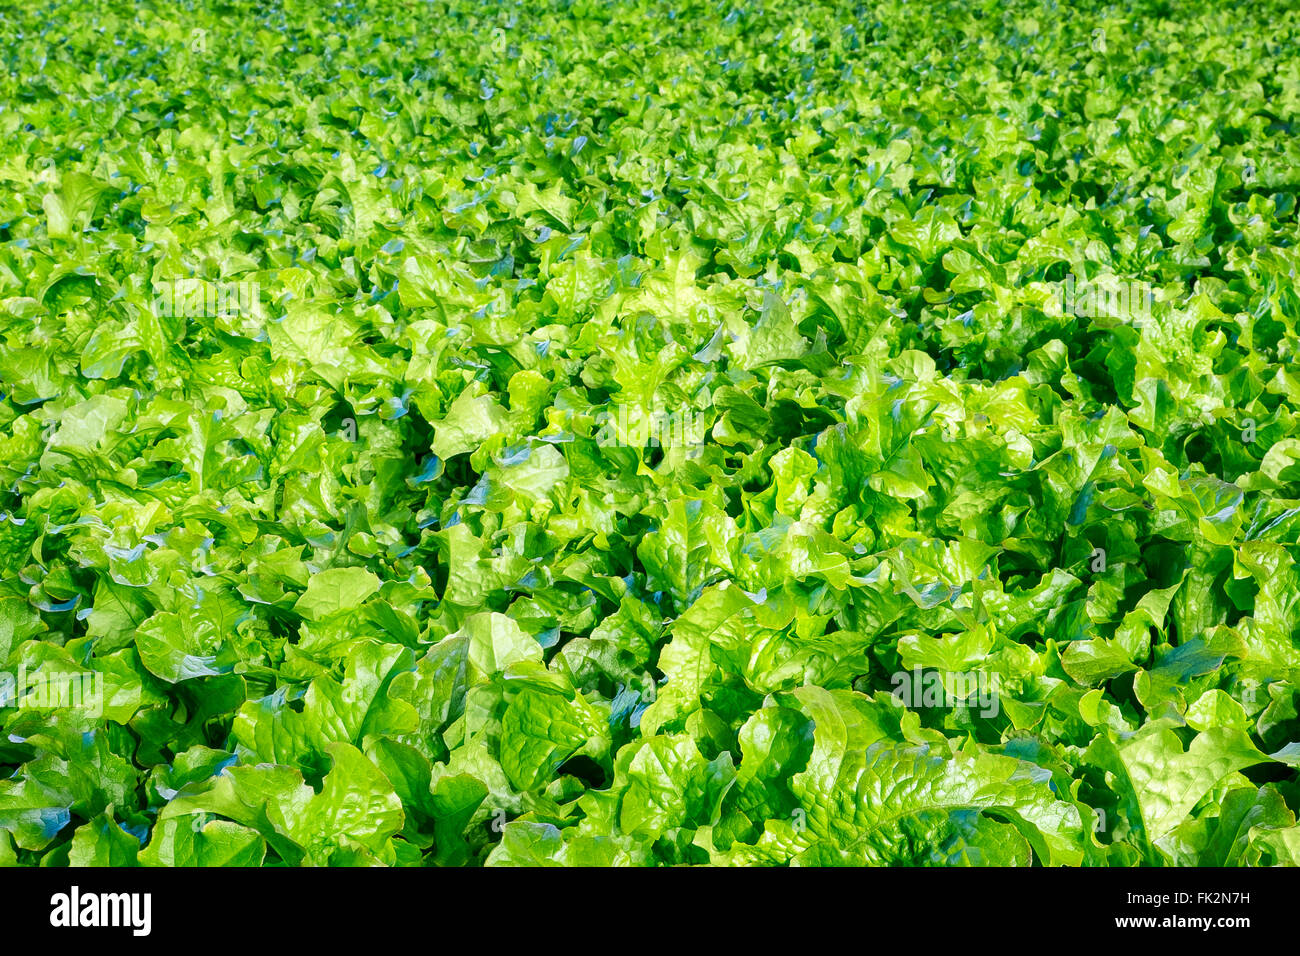 Background of fresh organic lettuce - Stock Image